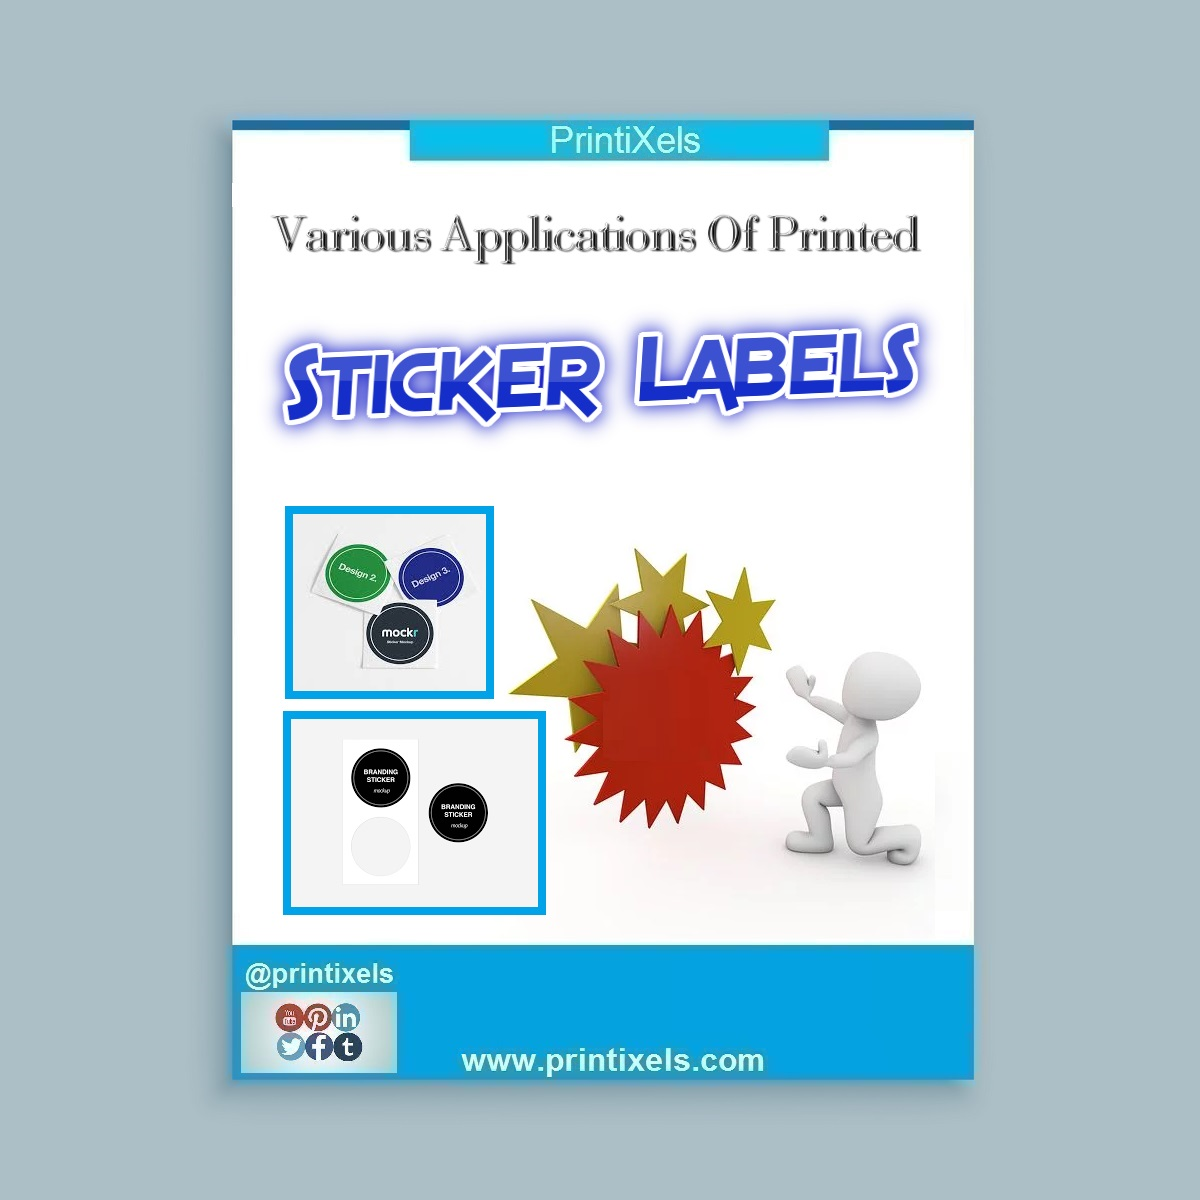 Various Applications of Printed Sticker Labels